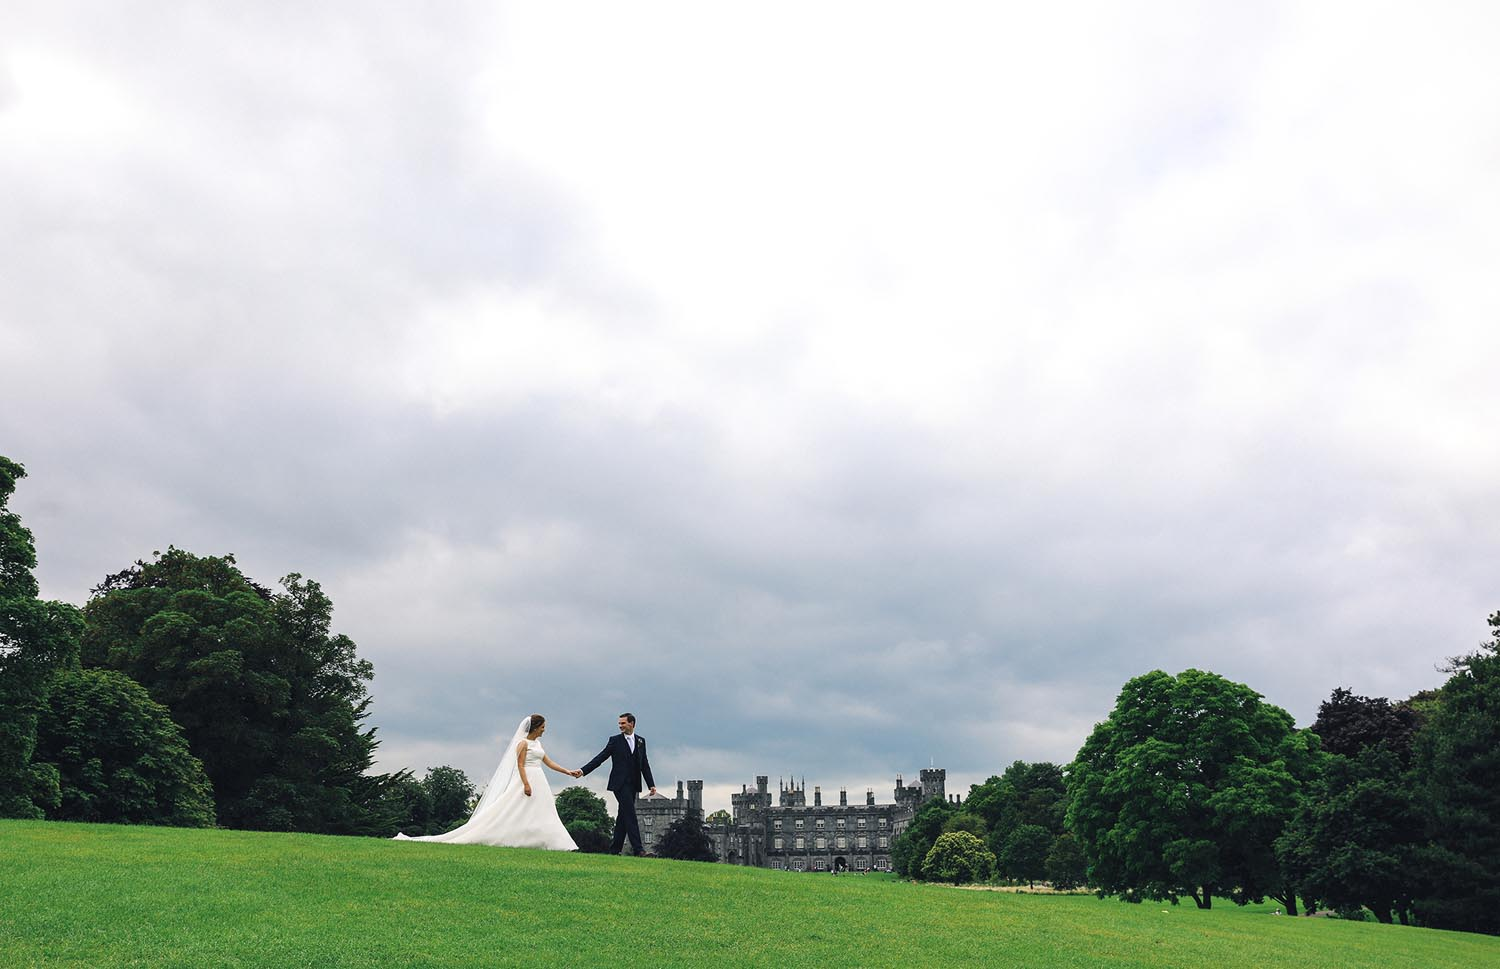 Married couple walking together with Kilkenny Castle in the background